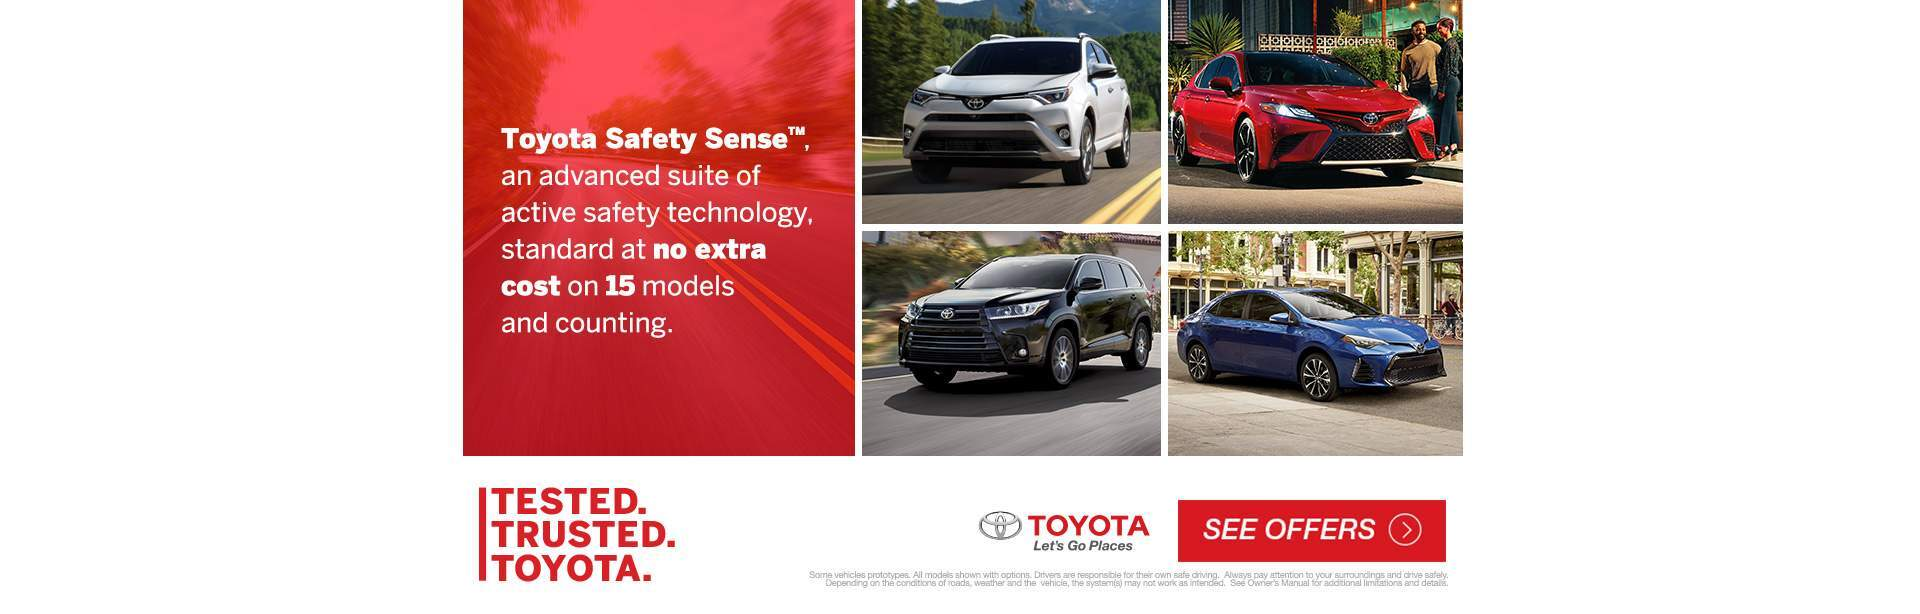 Tested trusted toyota lineup